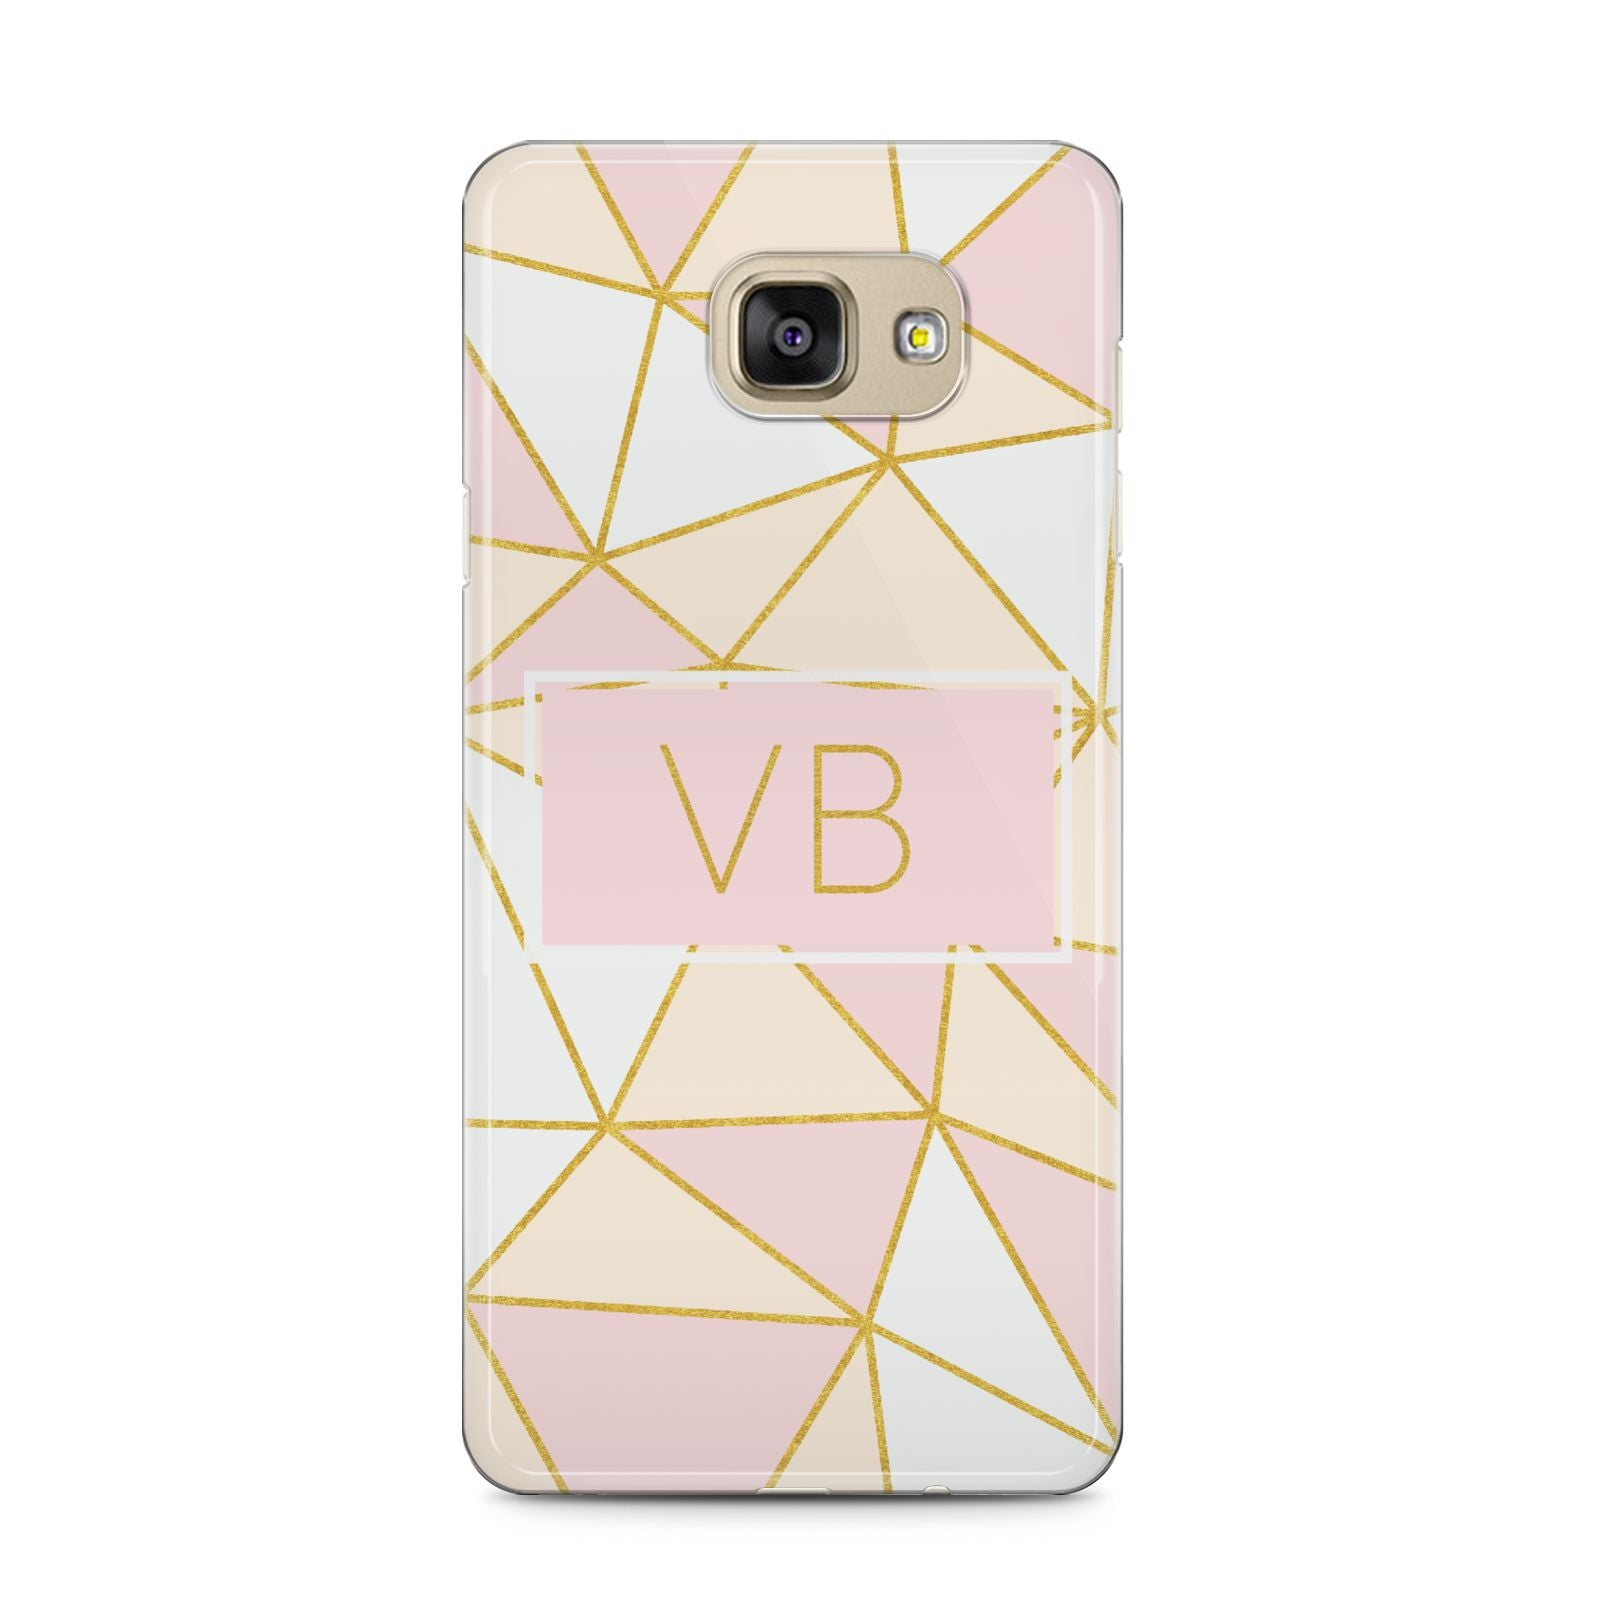 Personalised Gold Initials Geometric Samsung Galaxy A5 2016 Case on gold phone